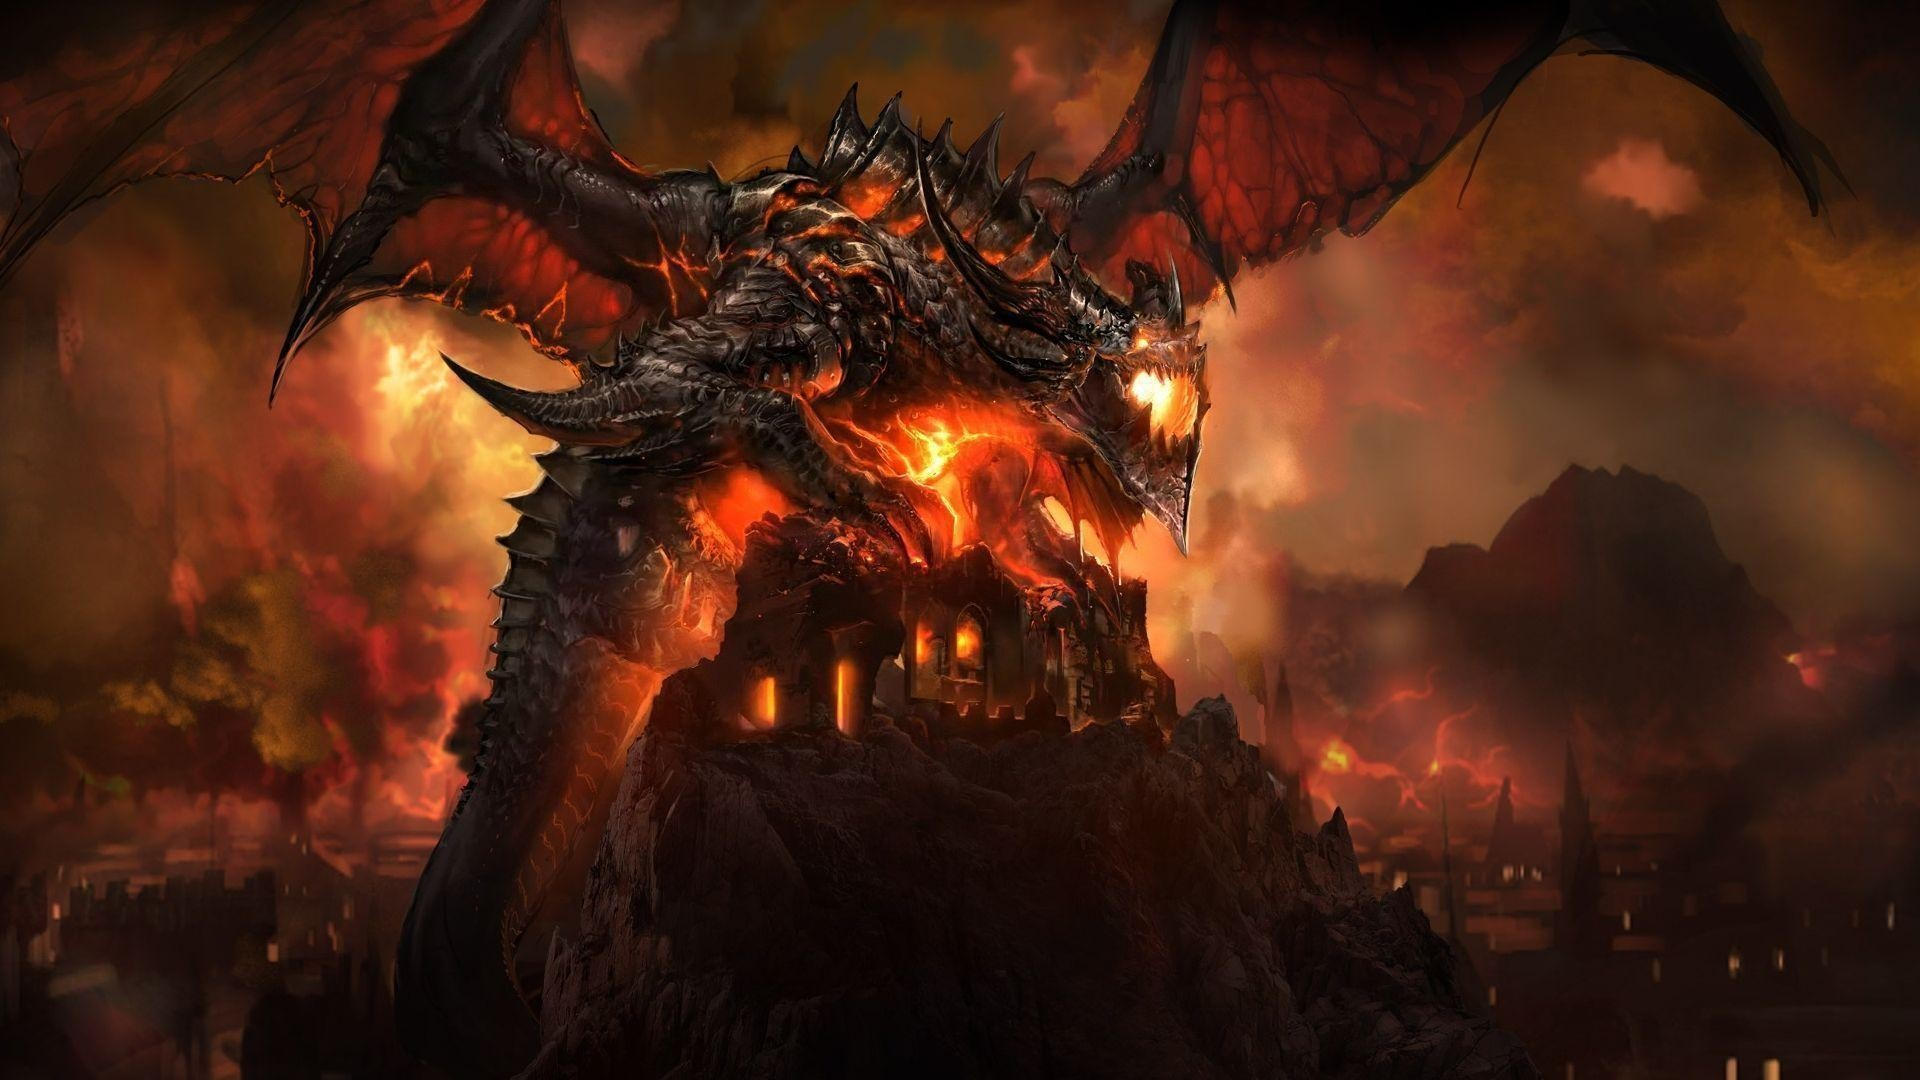 Dragon Wallpaper Hd 75 Pictures